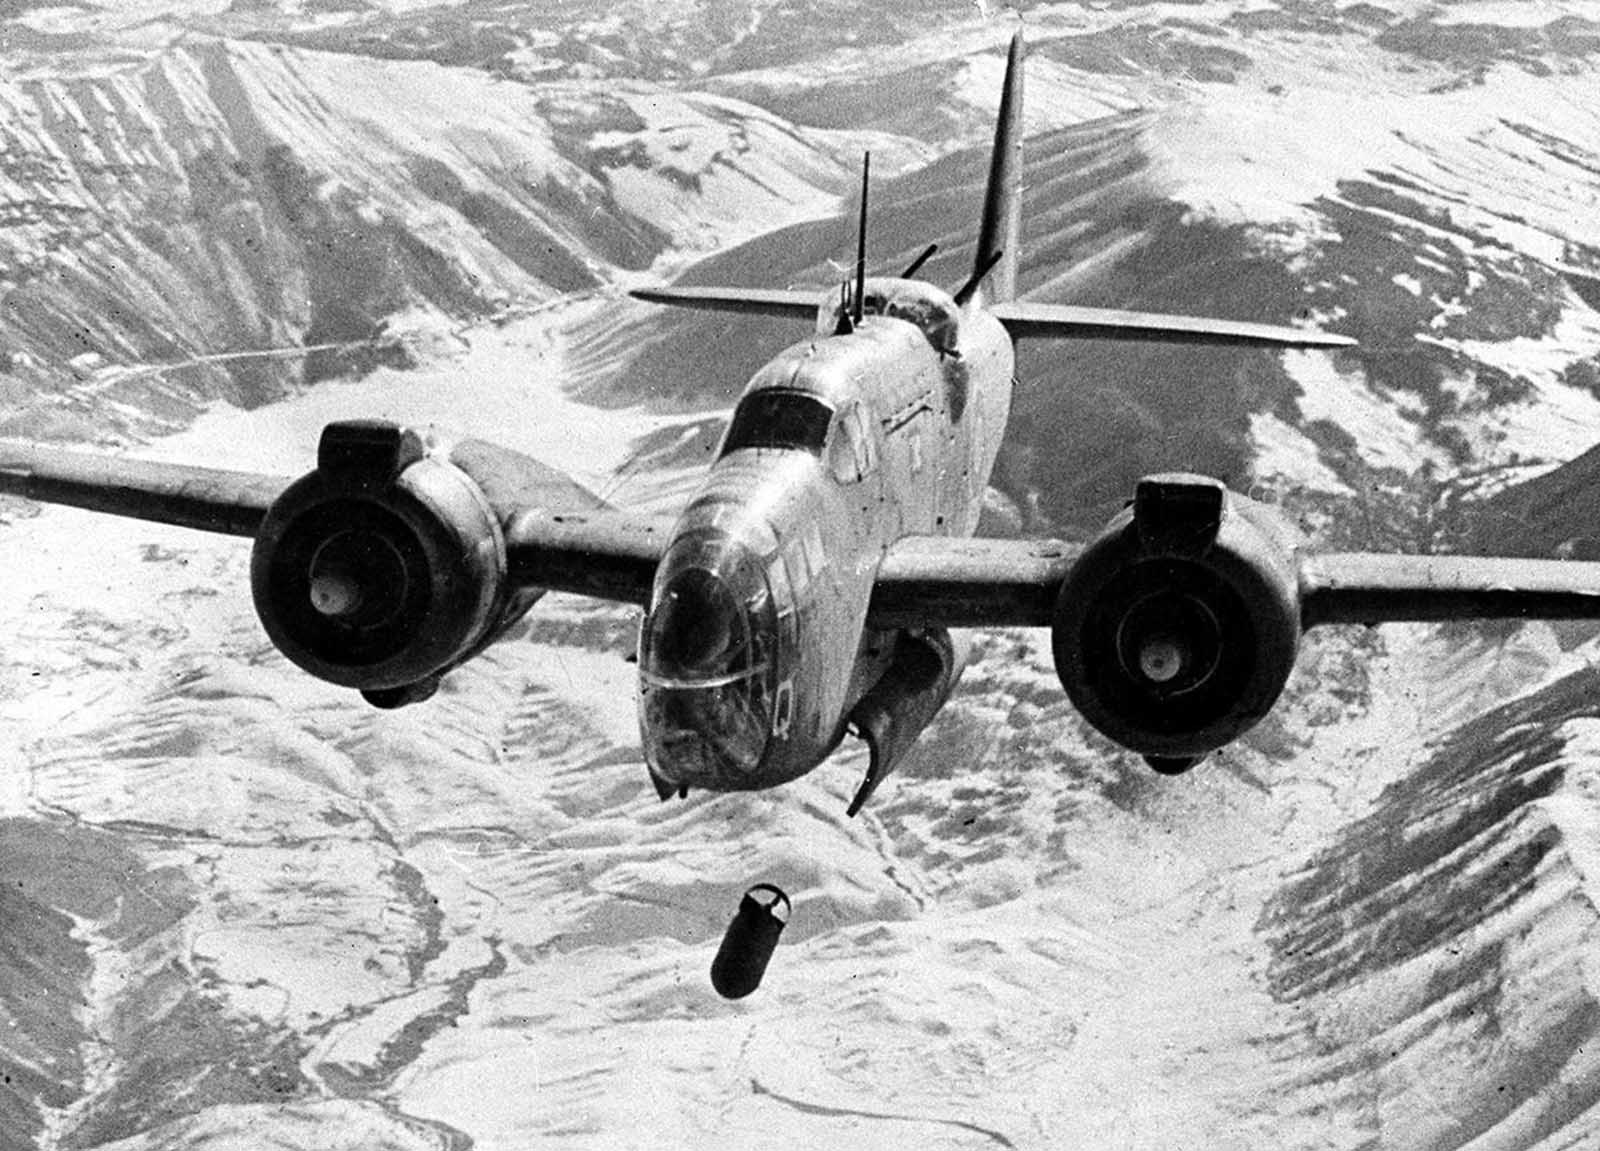 A Royal Air Force Baltimore light bomber drops a series of bombs during an attack on the railway station and junction at the snow-covered town of Sulmona, a strategic point on the east-west route across Italy, in February of 1944.